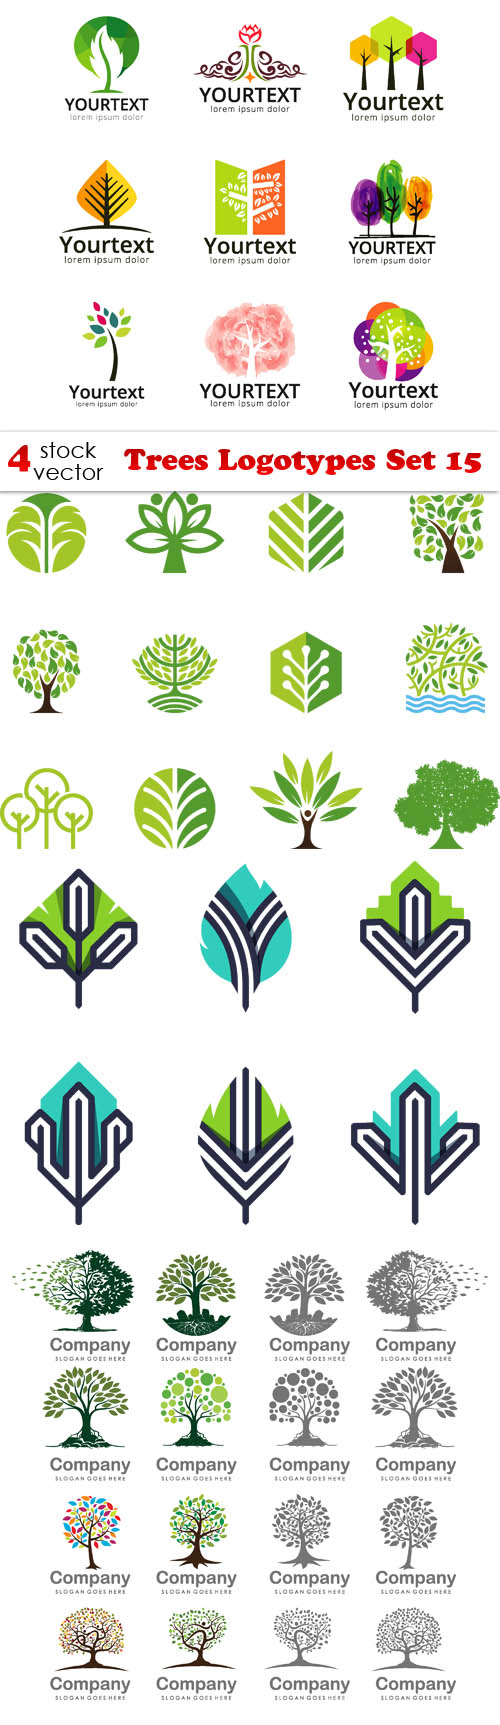 Vectors - Trees Logotypes Set 15